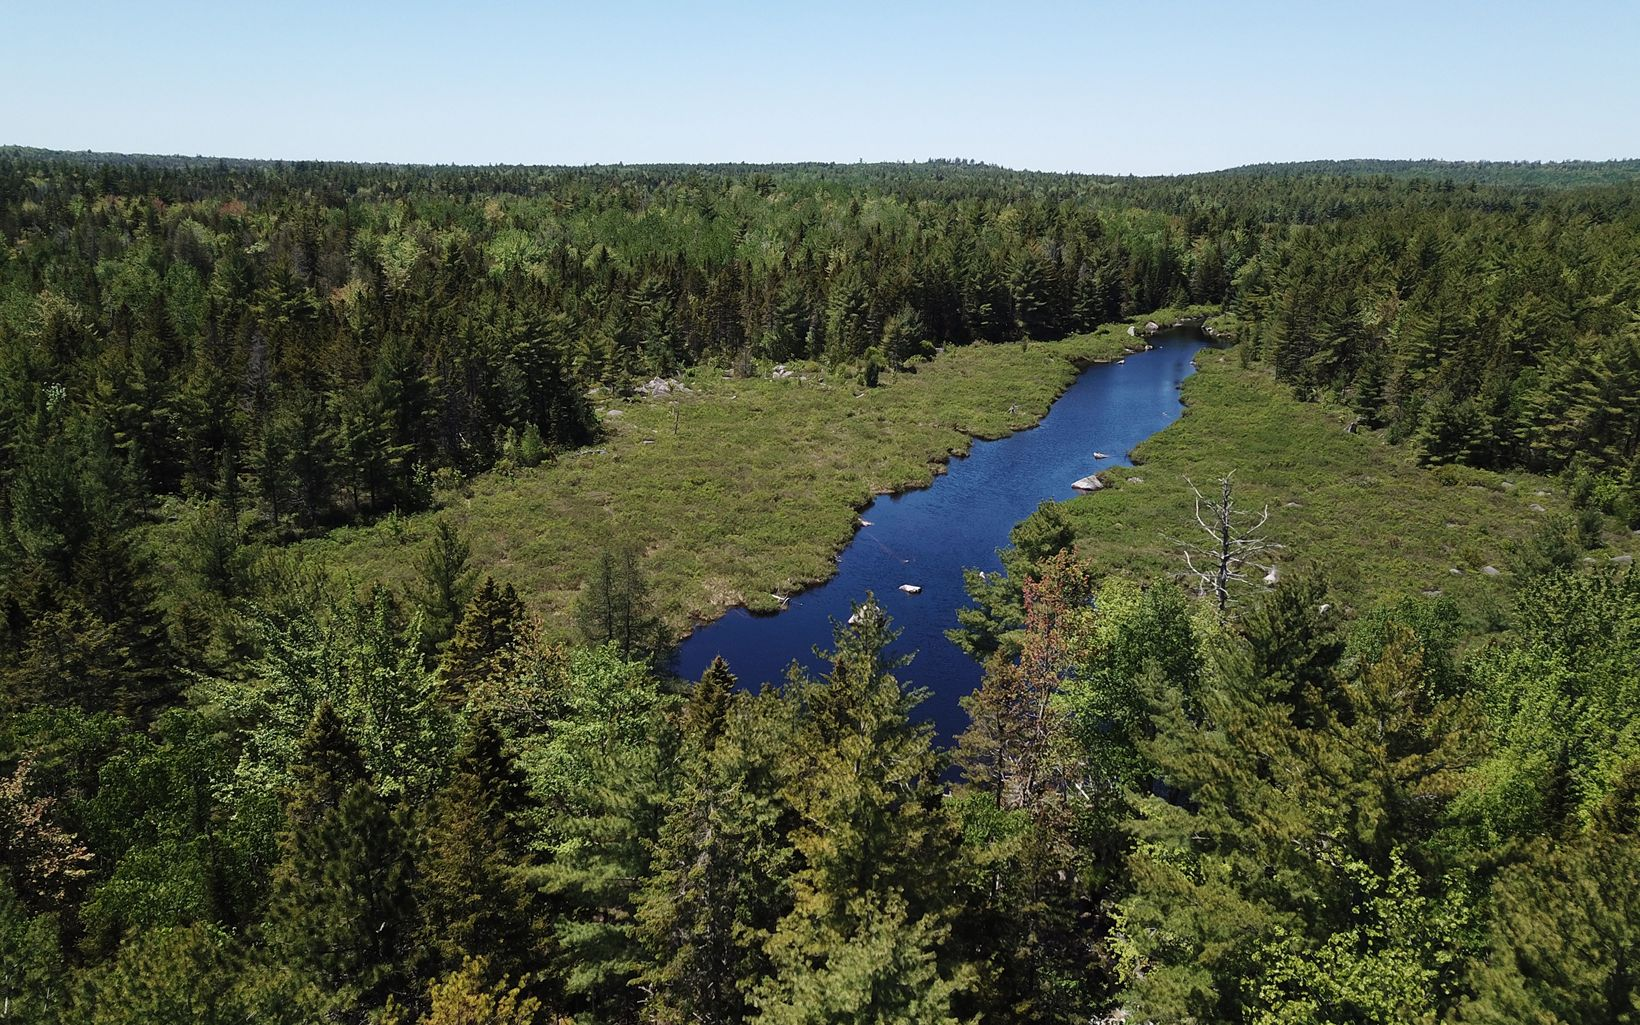 aerial view of stream and wetlands surrounded by forest